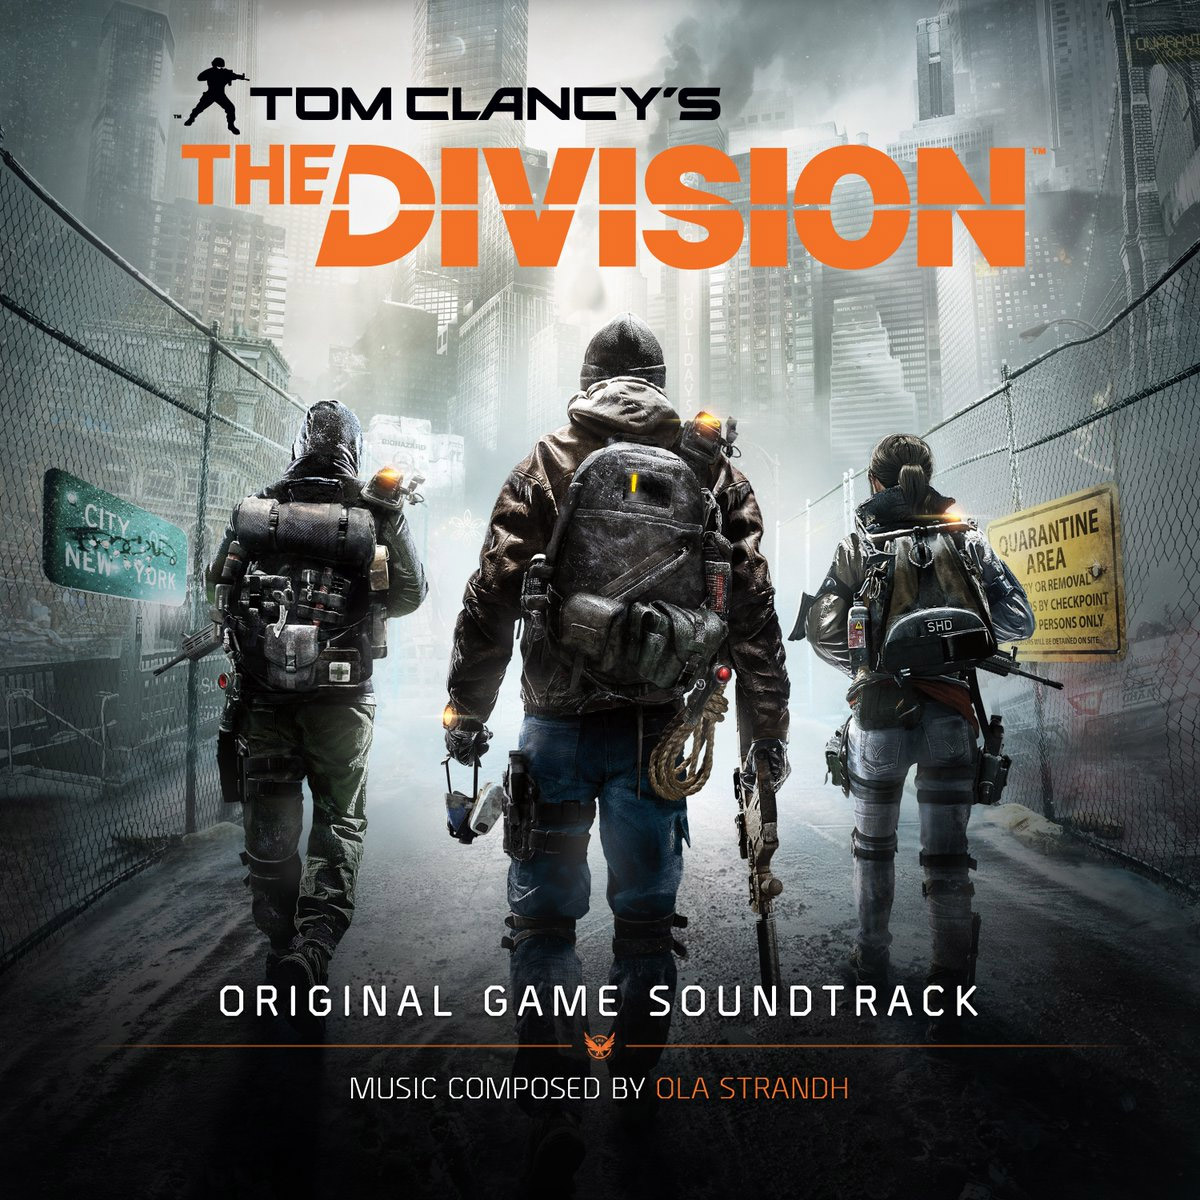 The Division (Game Soundtrack) – Ola Strandh